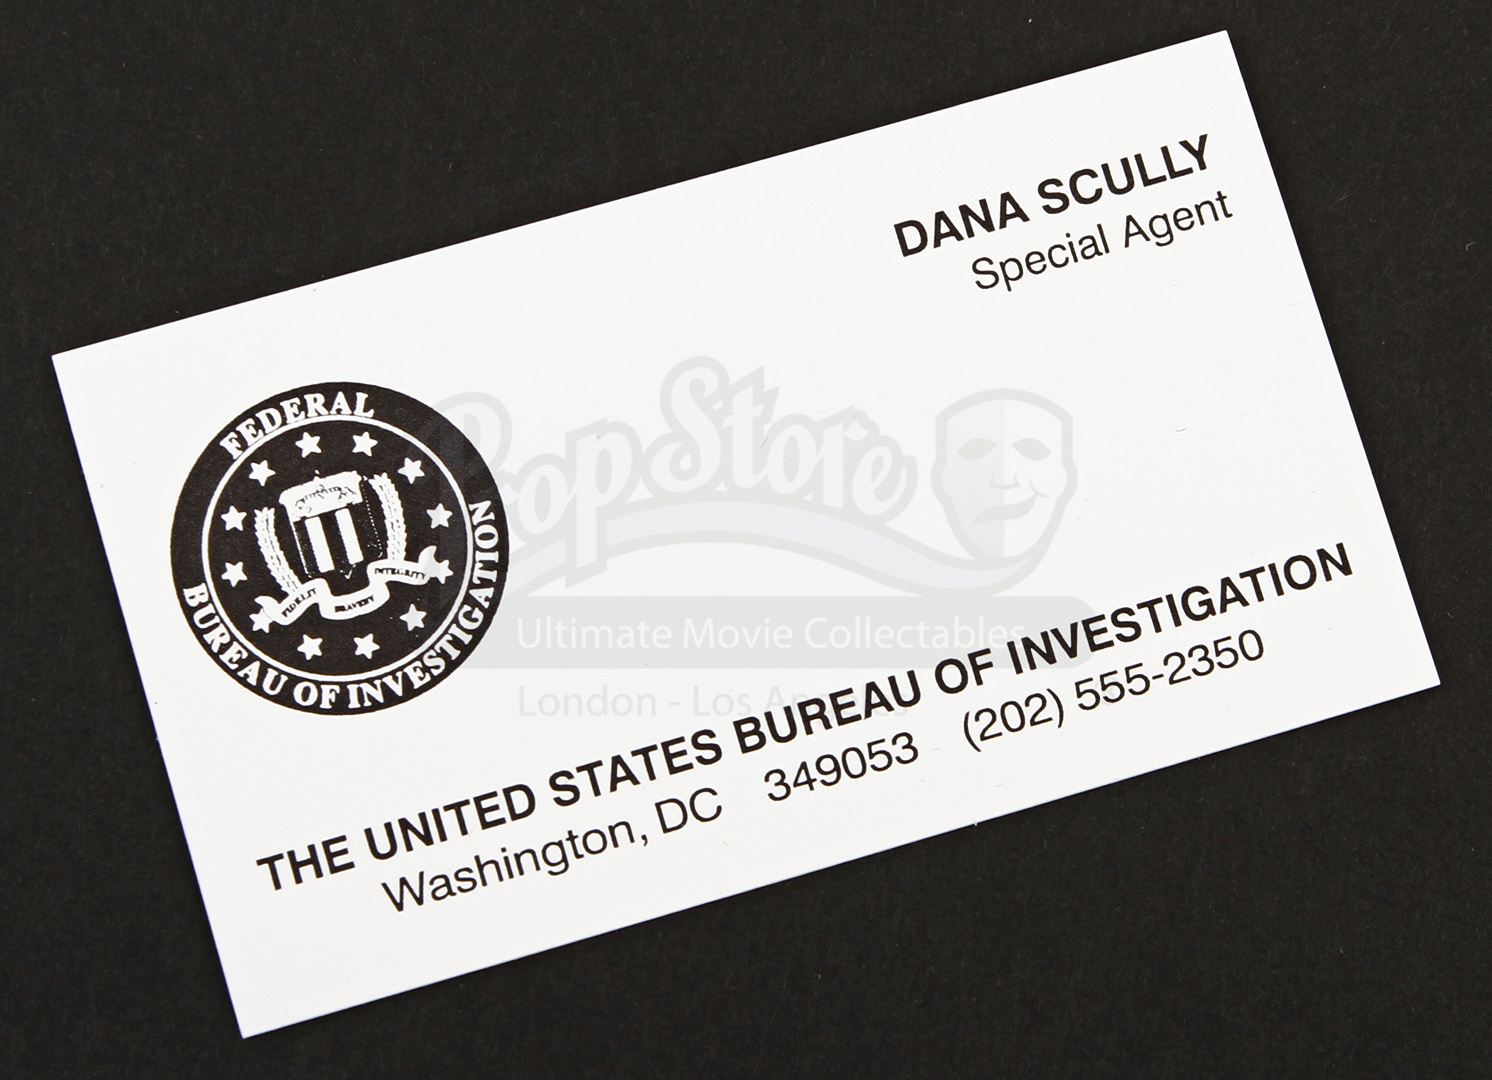 Prop store ultimate movie collectables x files the special agent dana scullys fbi business card reheart Image collections